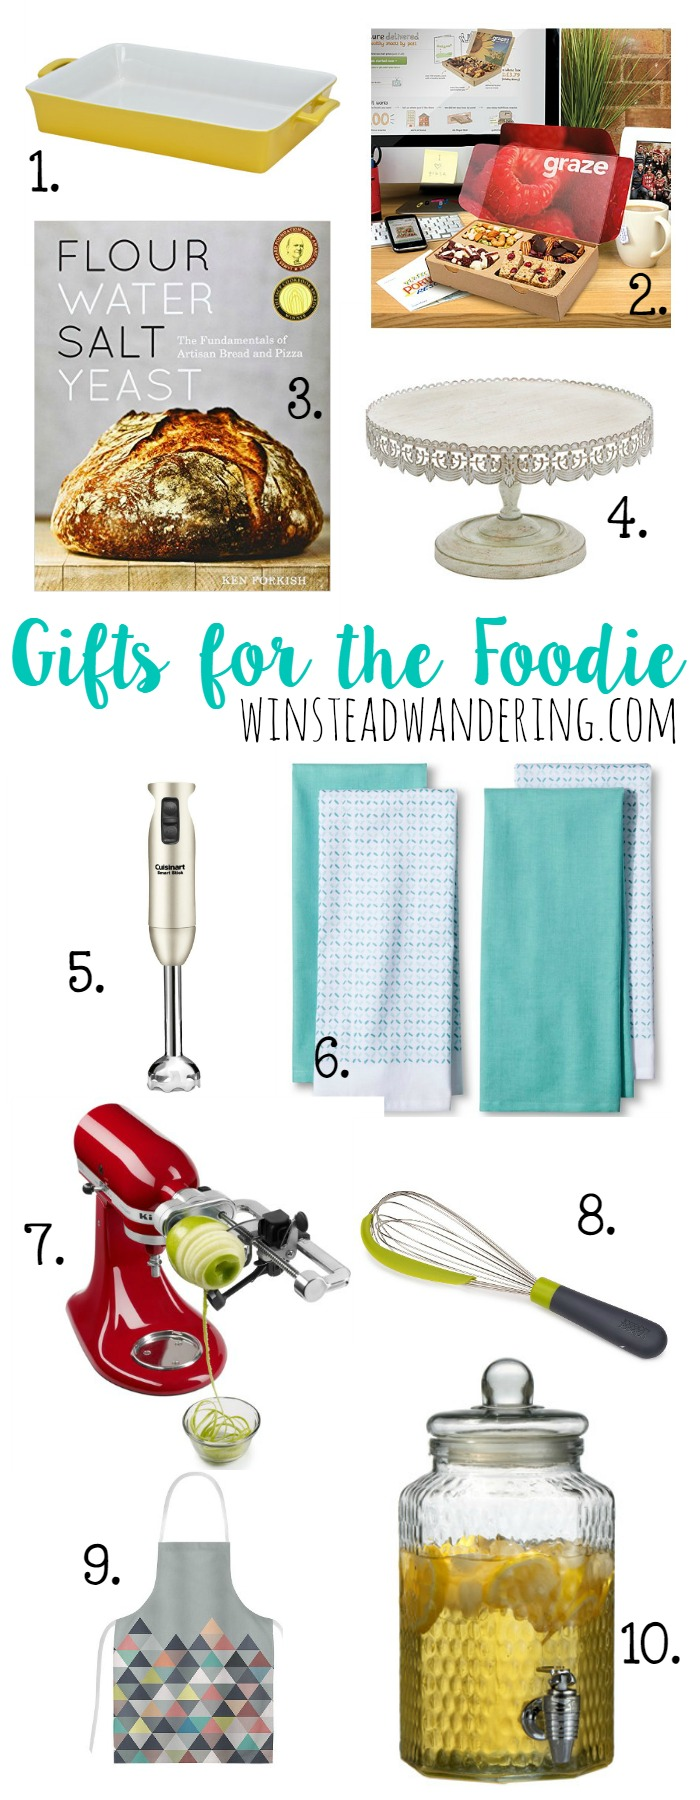 Gifts For the Foodie: the best gift inspiration for the person in your life who loves to cook, bake, and feed family and friends.